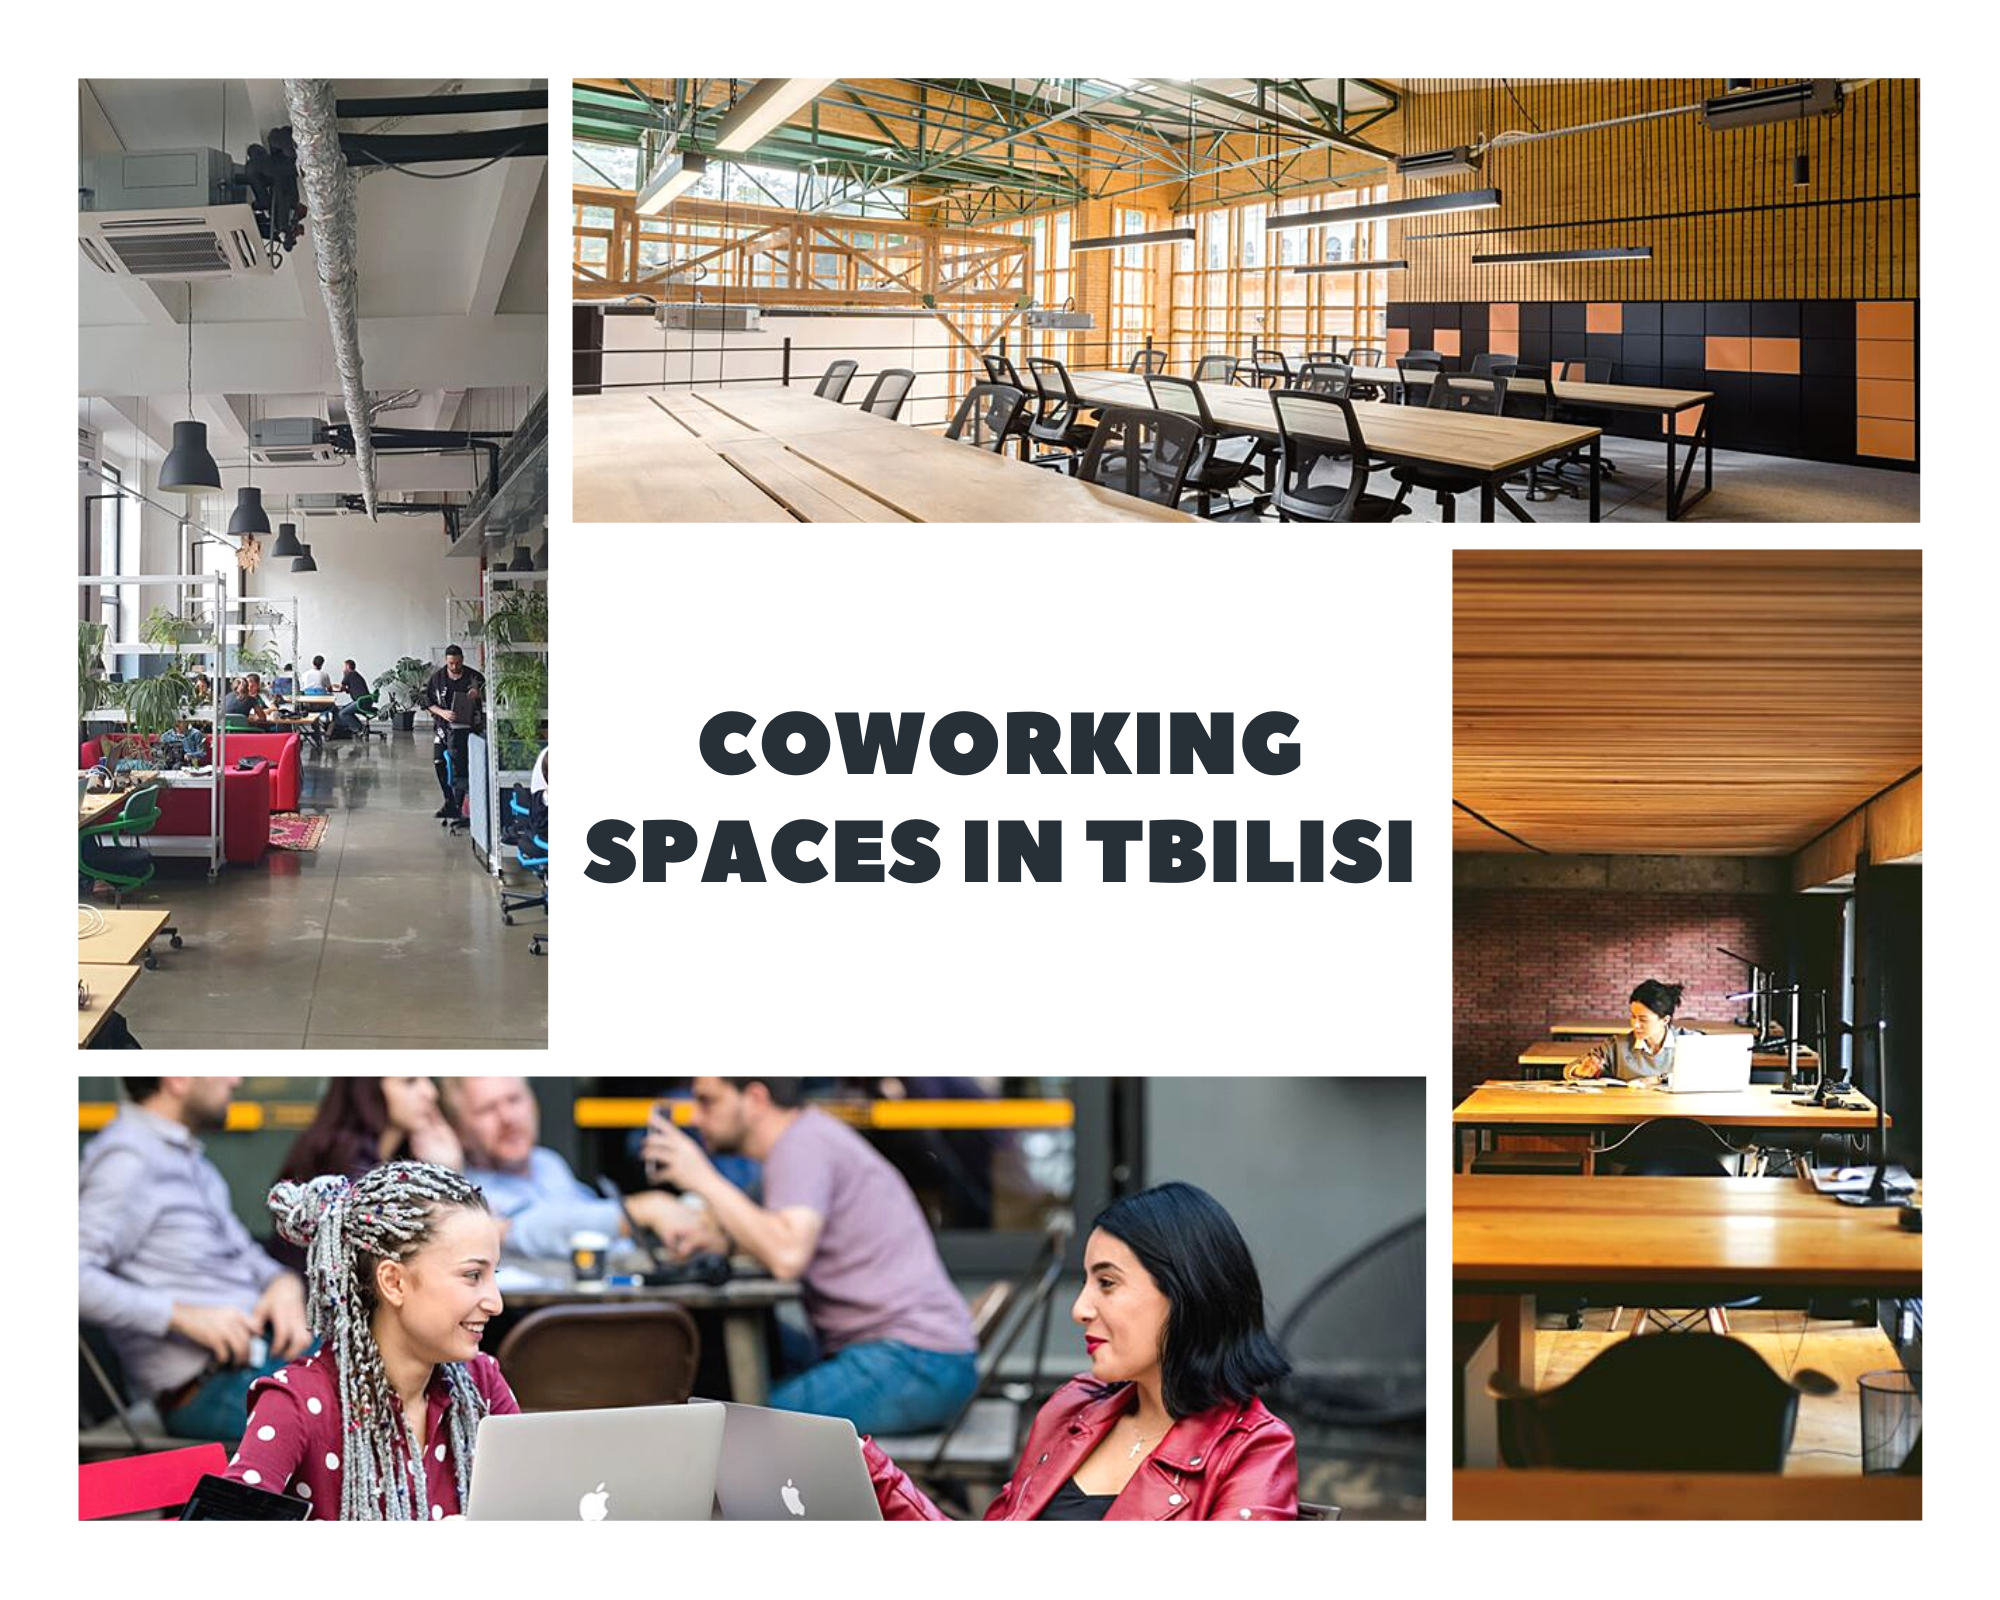 Coworking Spaces in Tbilisi   The 7 Best Places for Digital Nomads